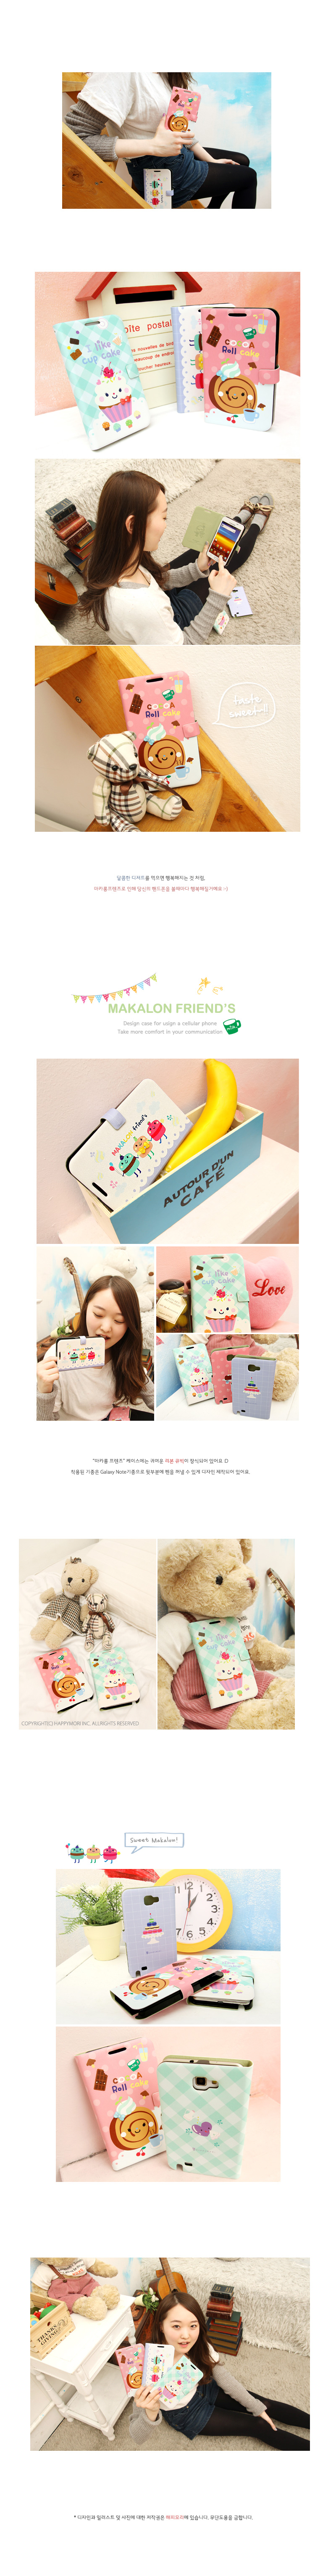 [HAPPYMORI] Flip Cover Case _ MAKALON Friend's(iPhone4_4s,iPhone5_5s,iPhone6_6s)